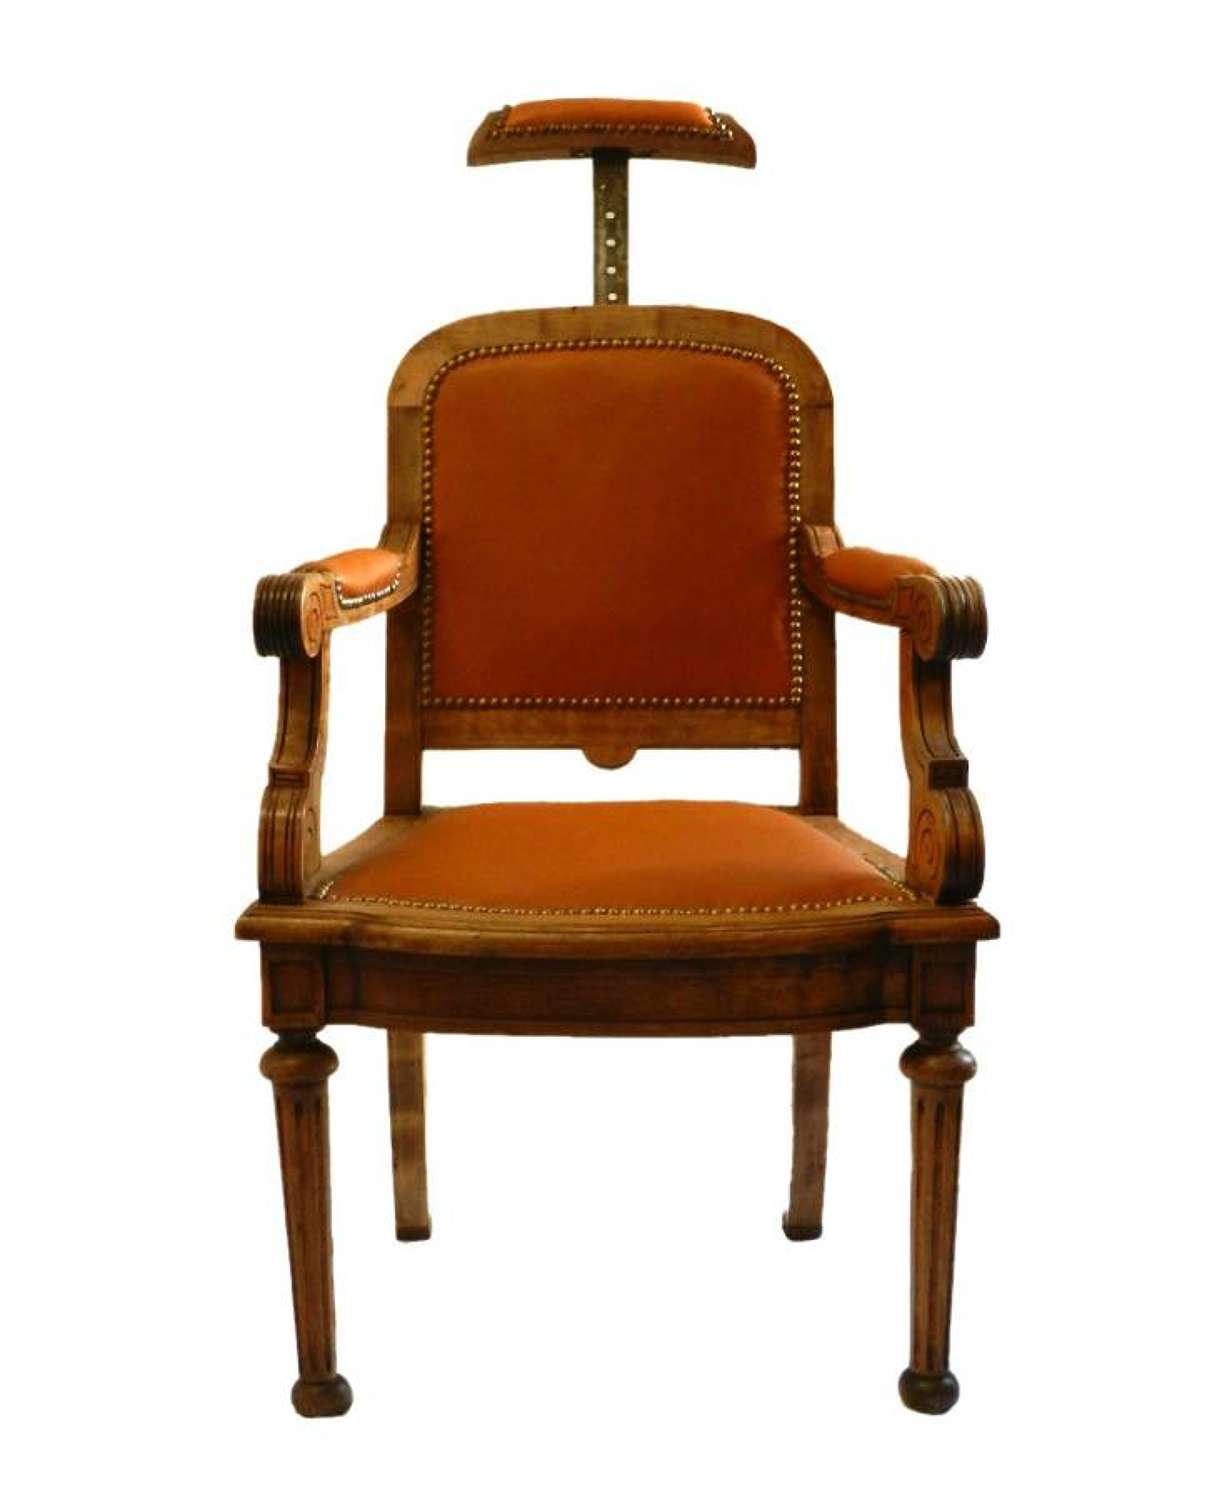 Rare C19 Barbers Chair Leather Desk Chair